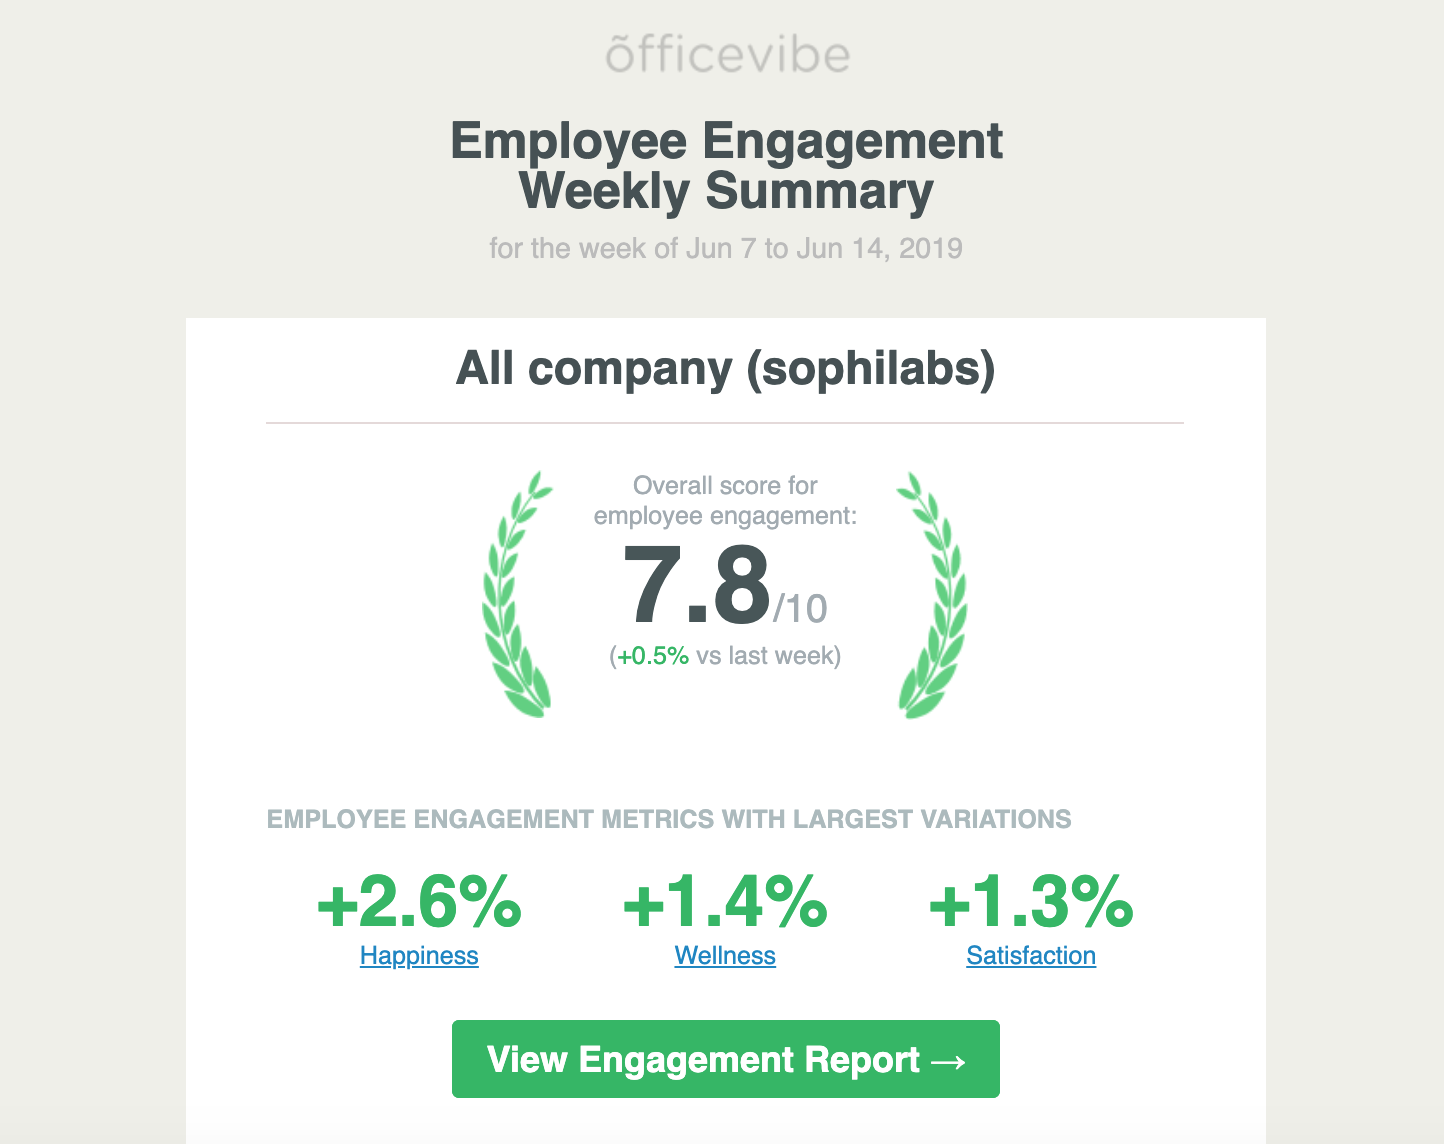 An Officevibe weekly summary of engagement at sophilabs.